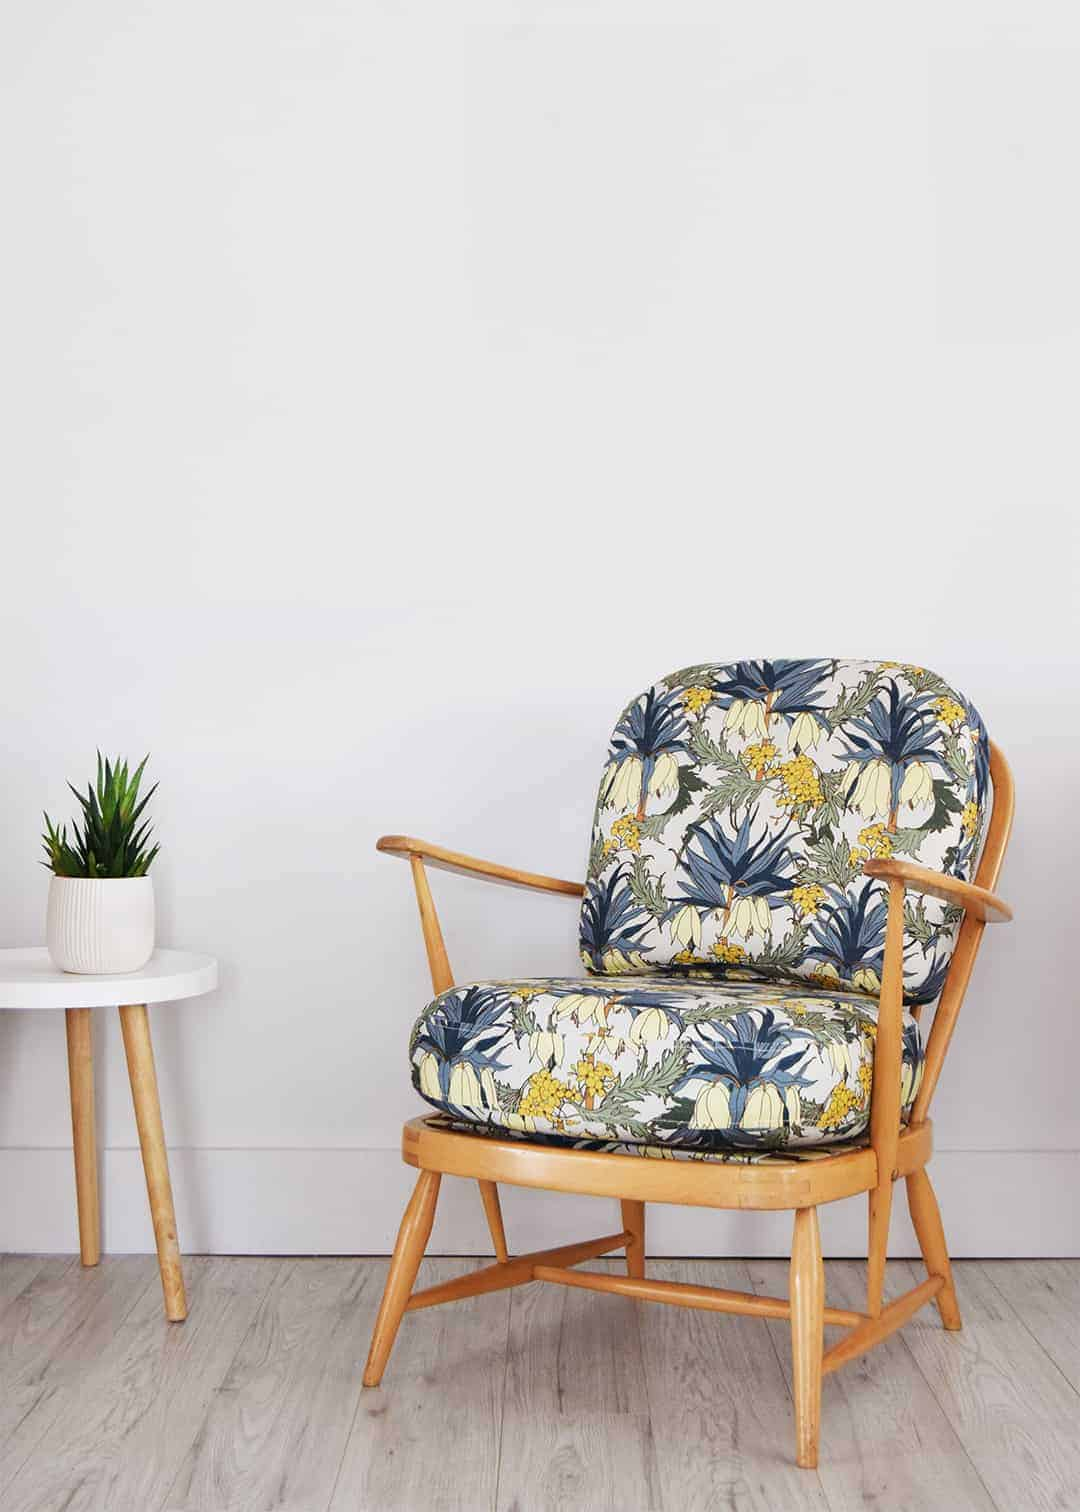 love this ercol chair reupholstered with bold floral linen fabric by Abigail Borg. Click through to get easy step by step DIY tutorial on how to upholster or upcyle your own chair and to find out more about this ethically produced fabric made in Britain as well as other beautiful fabrics you'll love